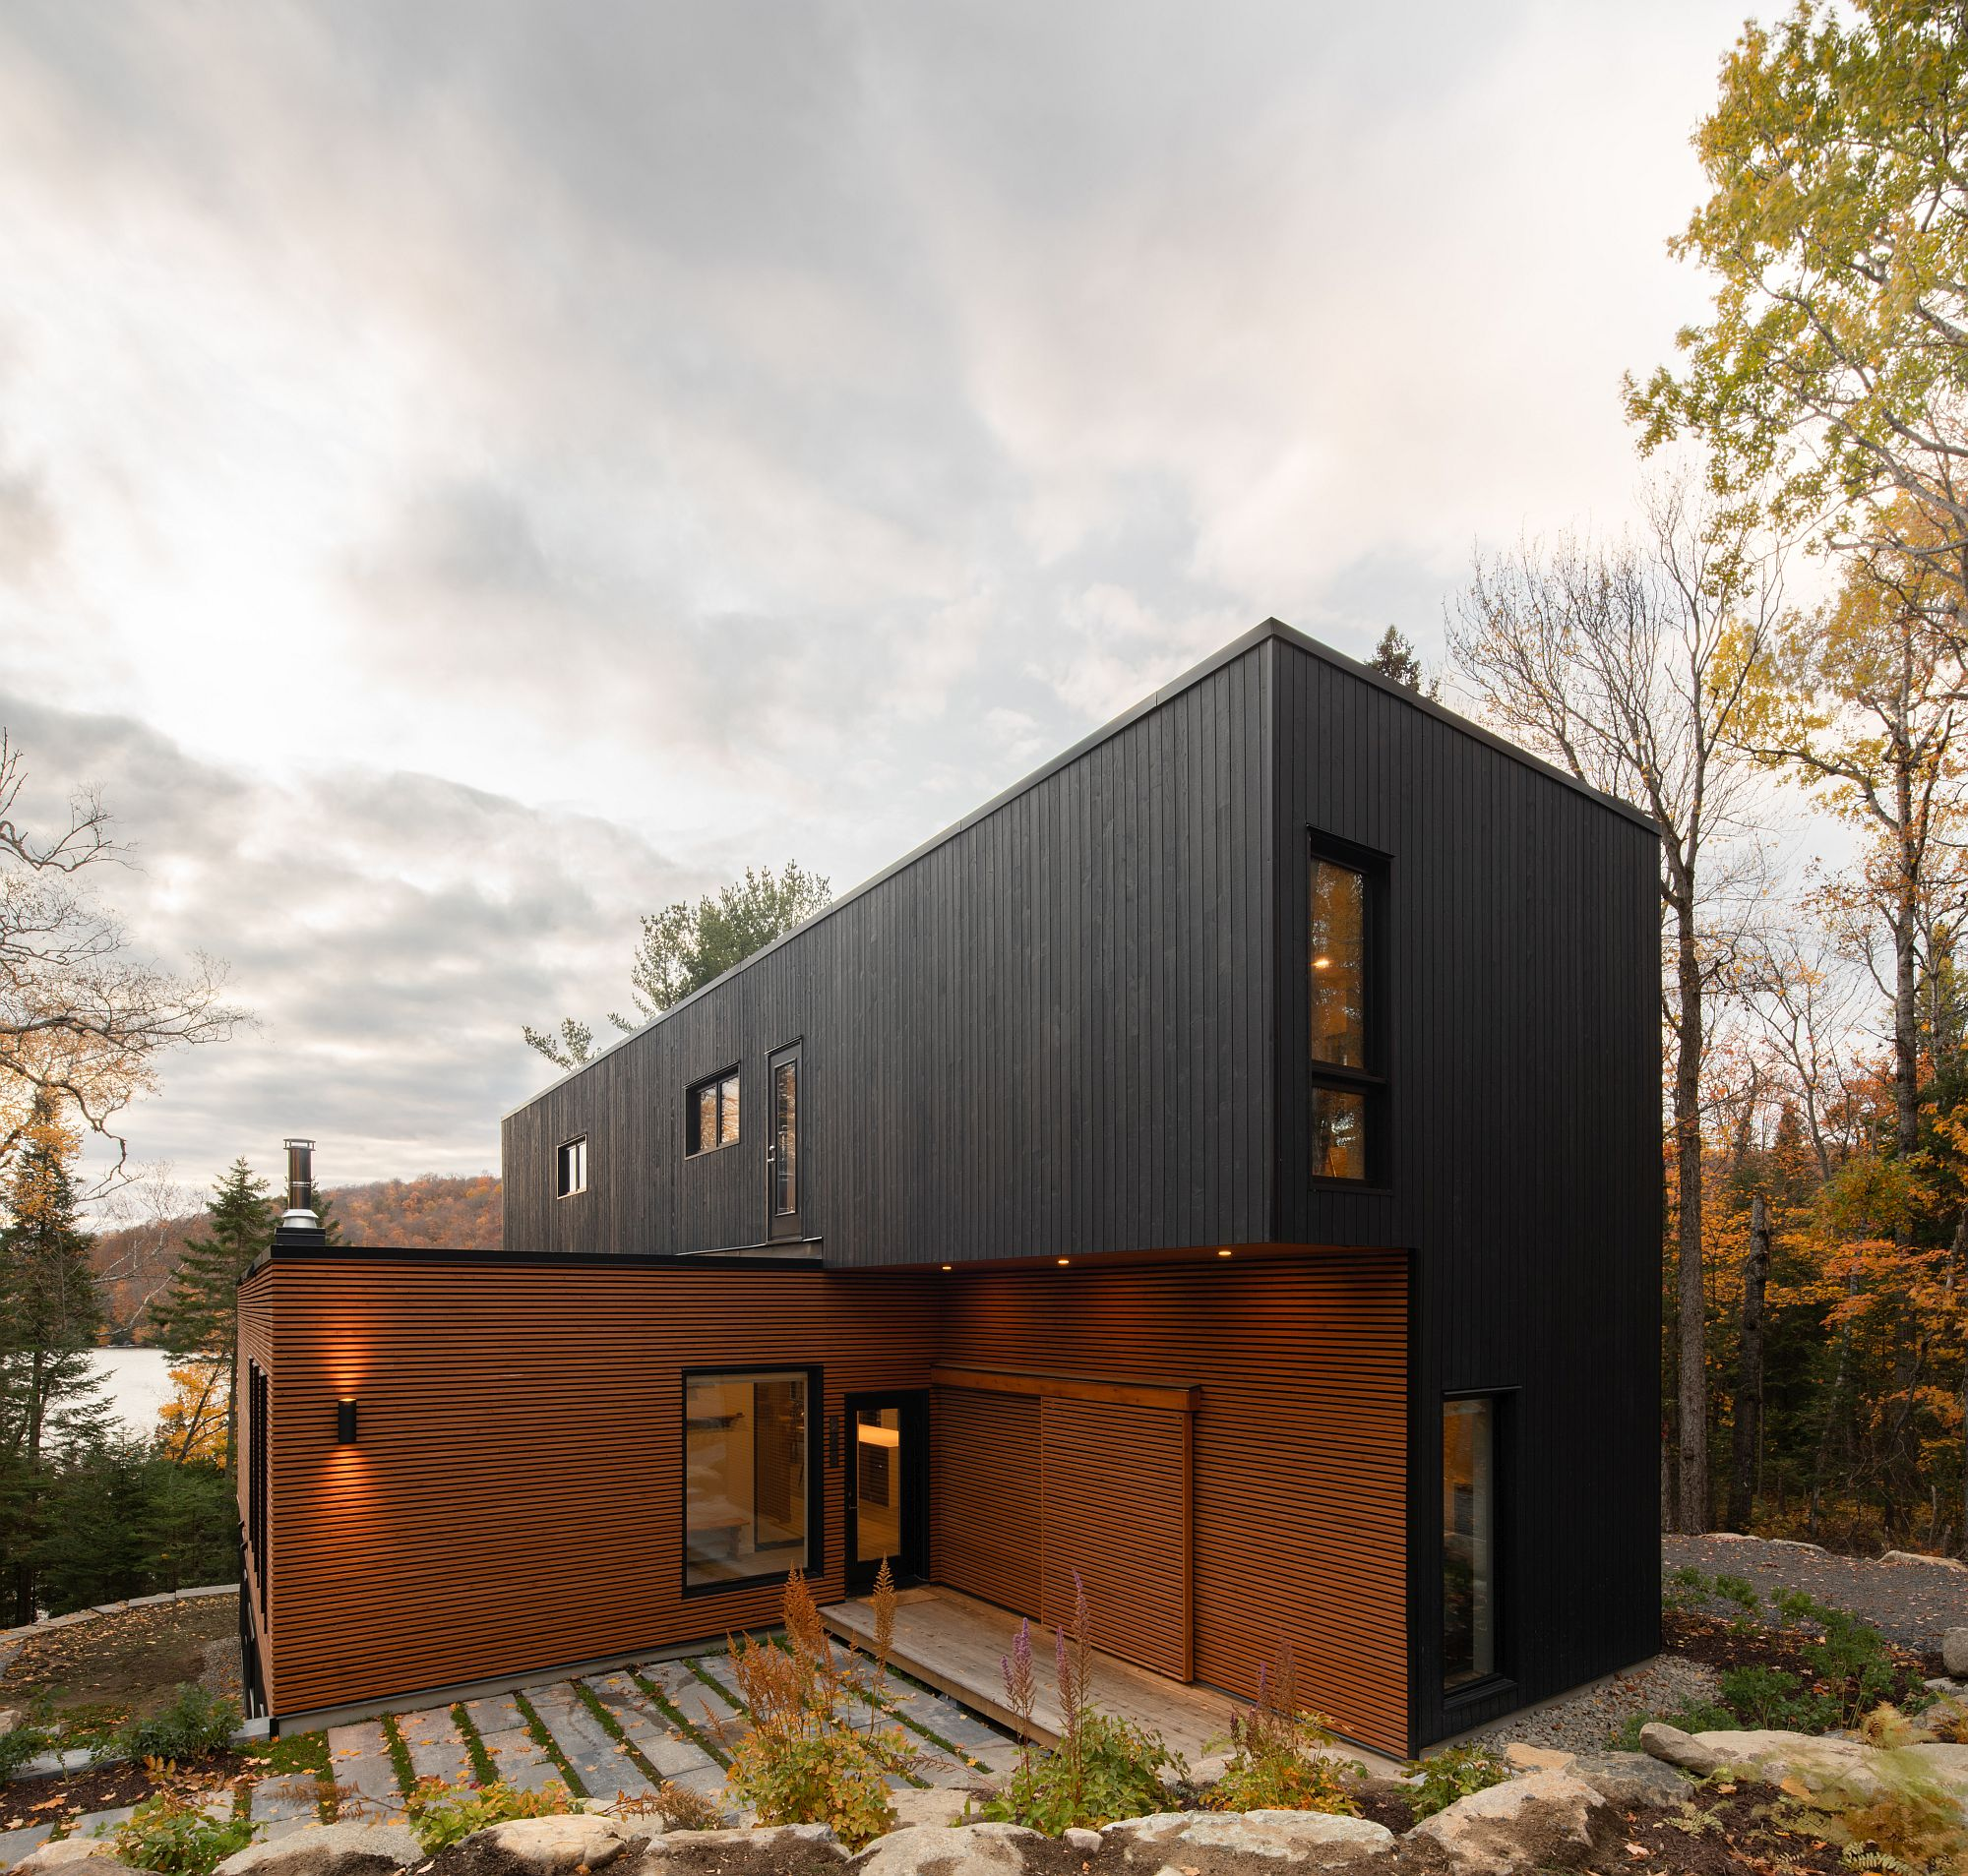 Dark upper level of the home stands in contrast to the natural lower level exterior finish